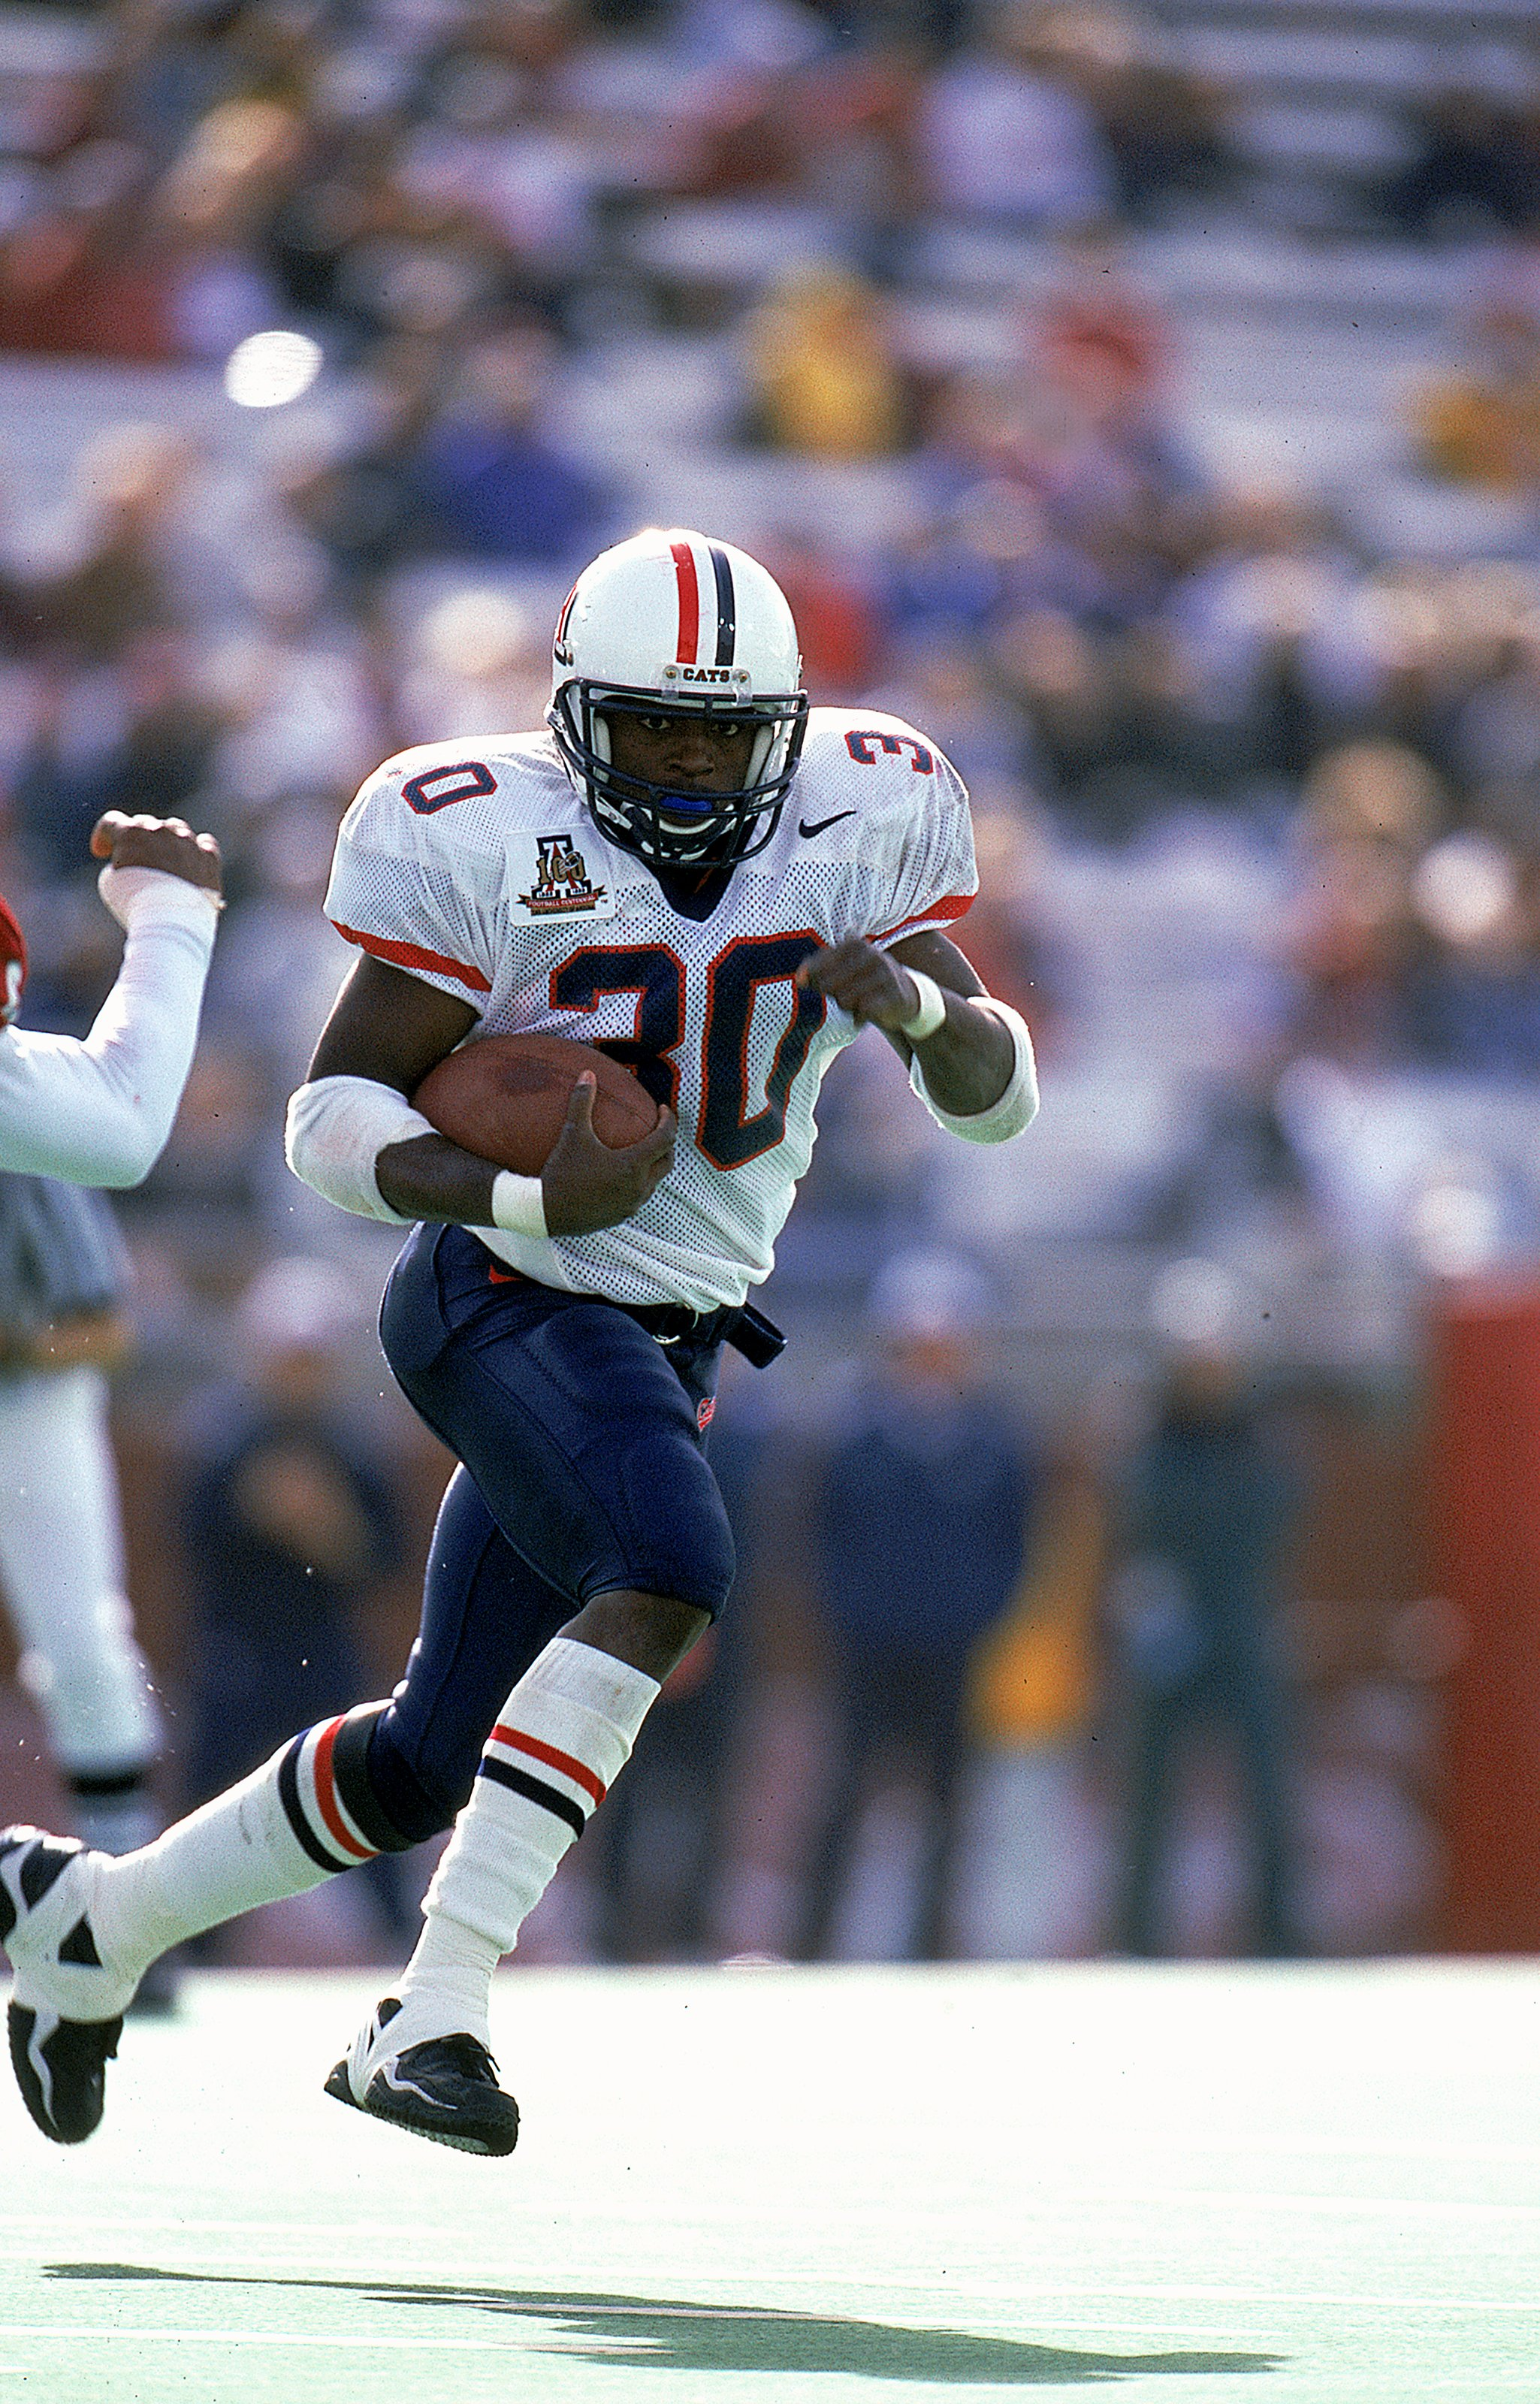 25 Sep 1999: Trung Canidate #30 of the Arizona Wildcats carries the ball during the game against the Washington State Cougars at the Martin Stadium in Pullman, Washington. The Wildcats defeated the Cougars 30-24.